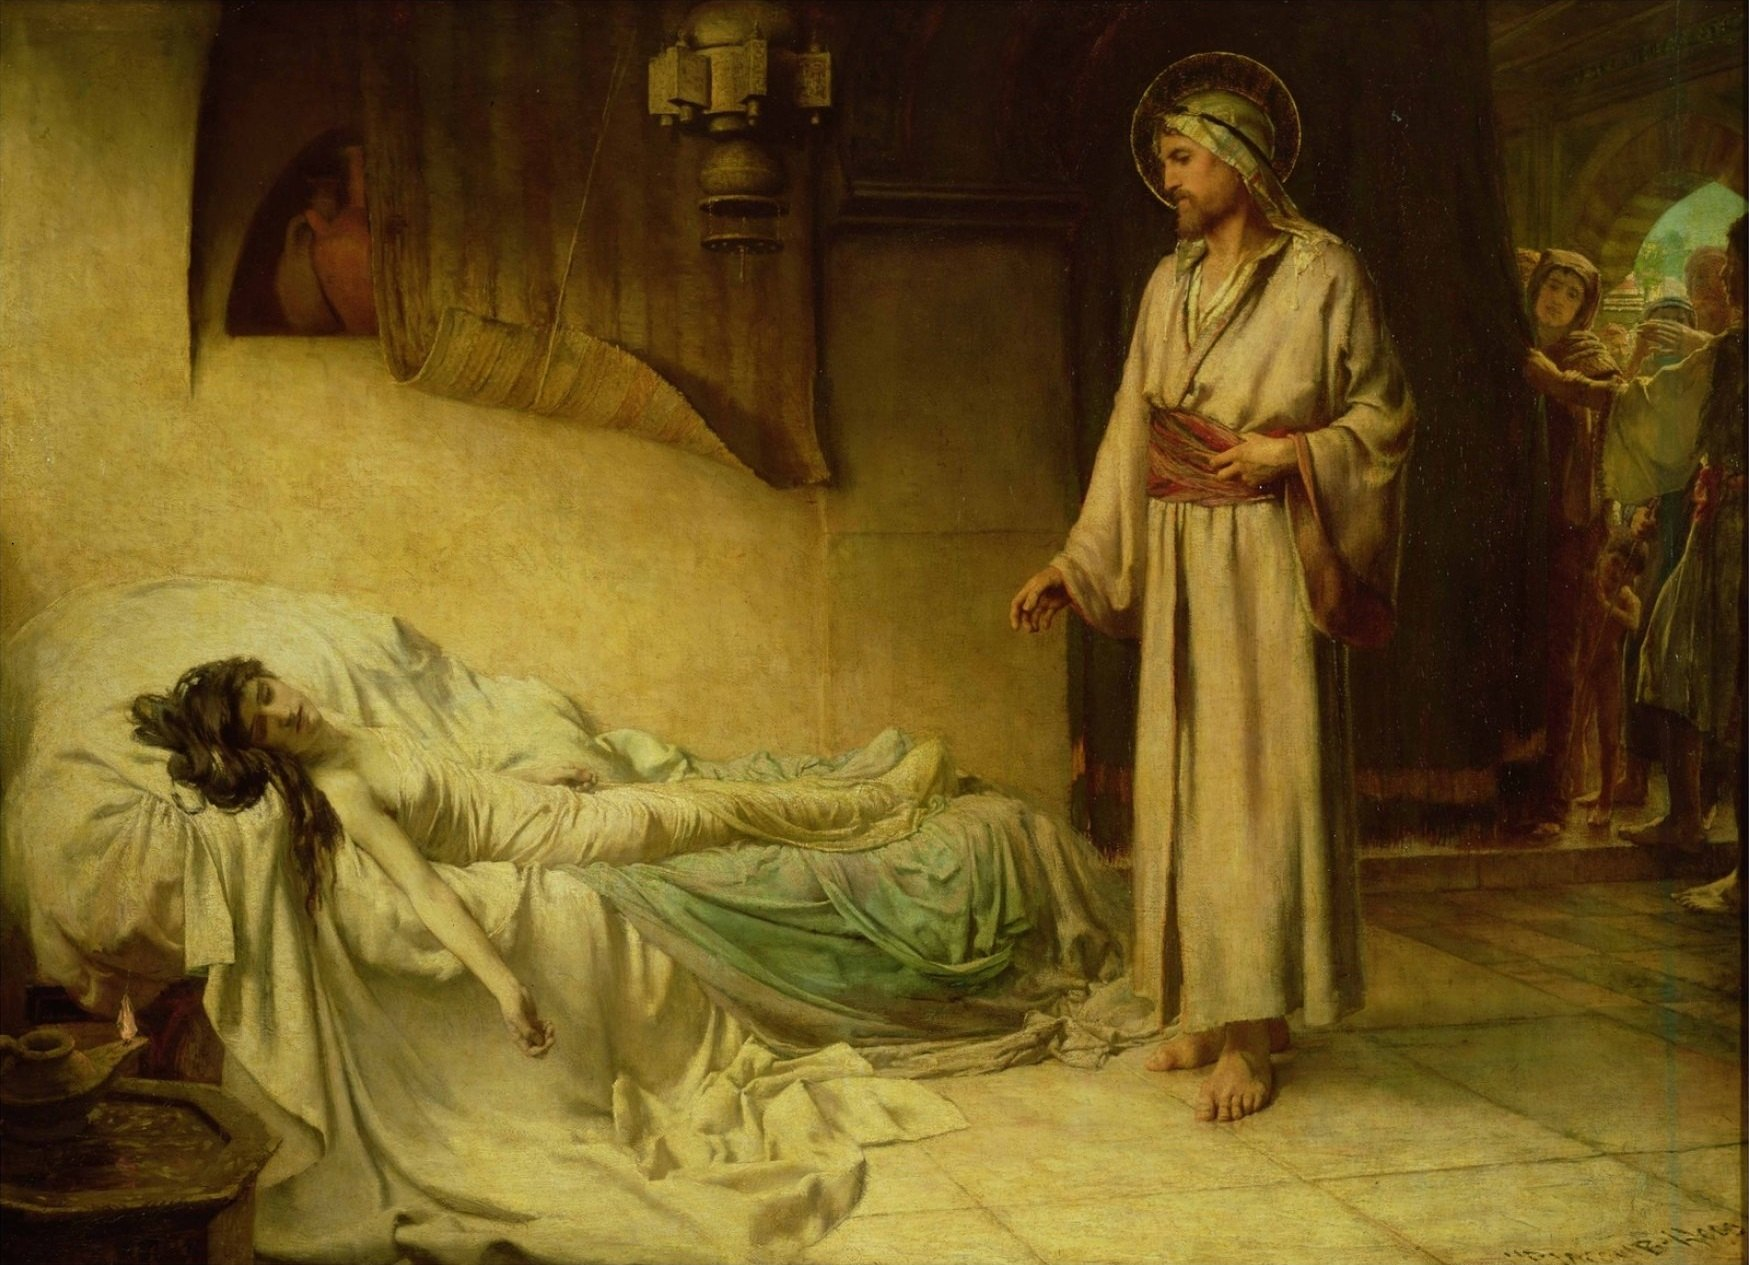 GHA13969 The Raising of Jairus's Daughter, 1885 (oil on canvas) by Jacomb-Hood, George Percy (1857-1930); © Guildhall Art Gallery, City of London; (add.info.: daughter of a synagogue elder brought back to life;); English,  out of copyright possible copyright restrictions apply, consult national copyright laws